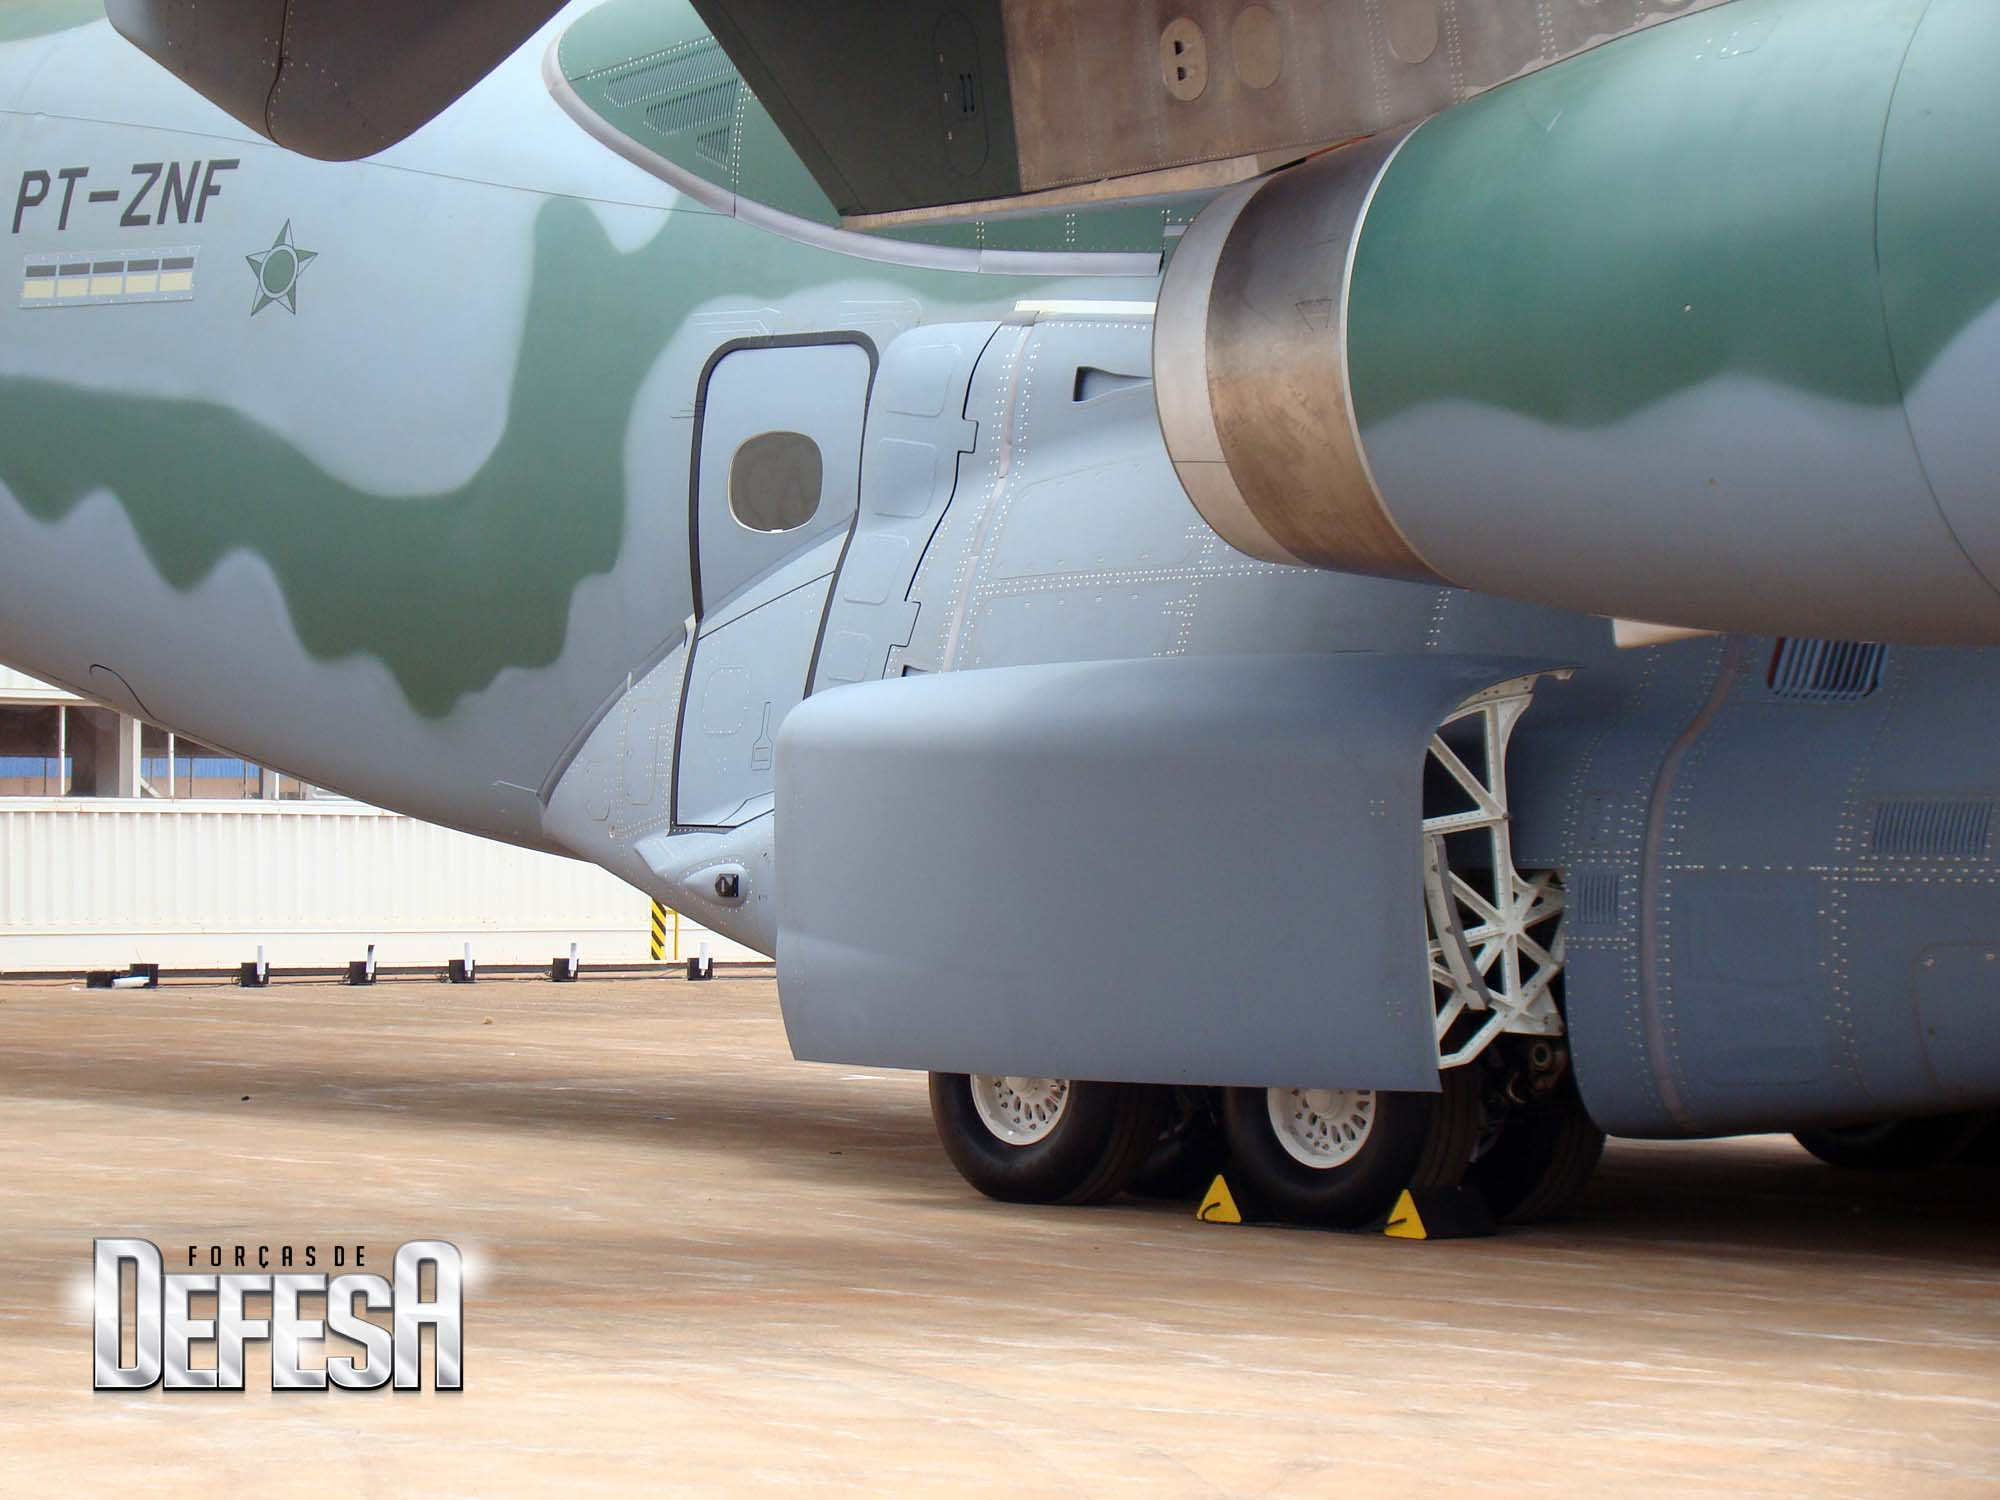 EMBRAER KC-390  - Página 39 KC-390-roll-out-21-10-2014-foto-17-Nun%C3%A3o-For%C3%A7as-de-Defesa